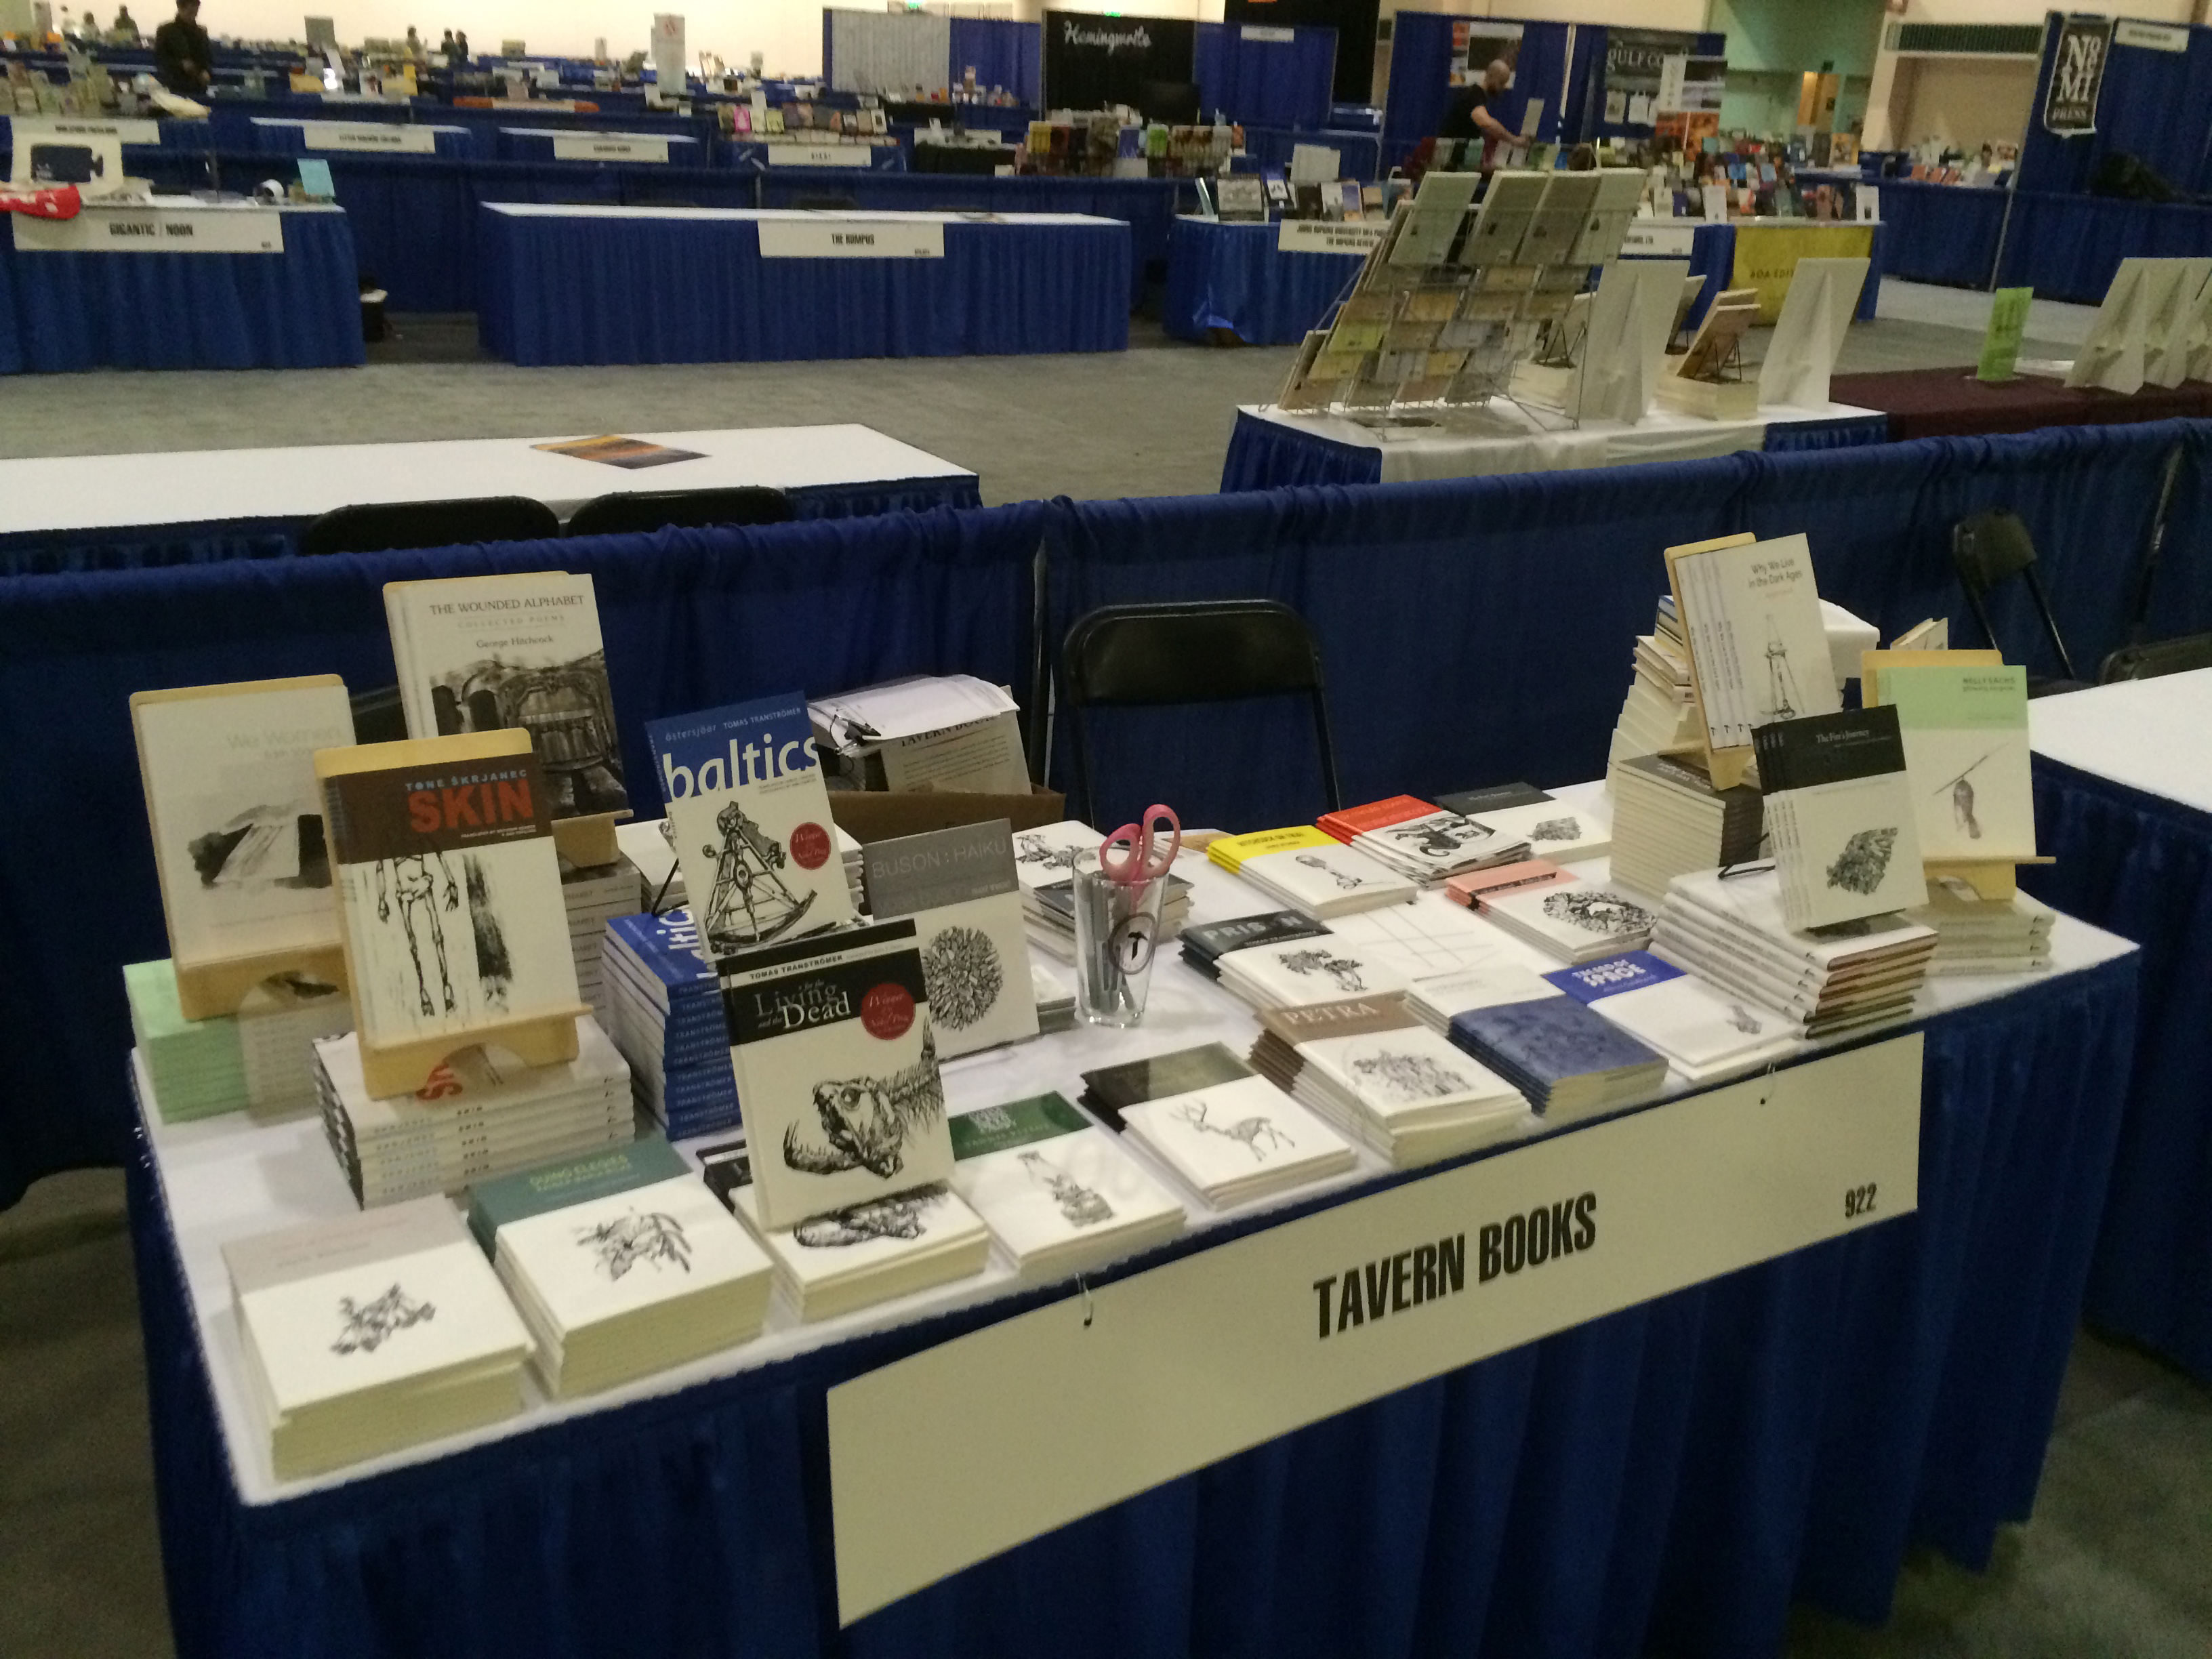 Dateline Minnesota: Jay Ponteri reports from AWP